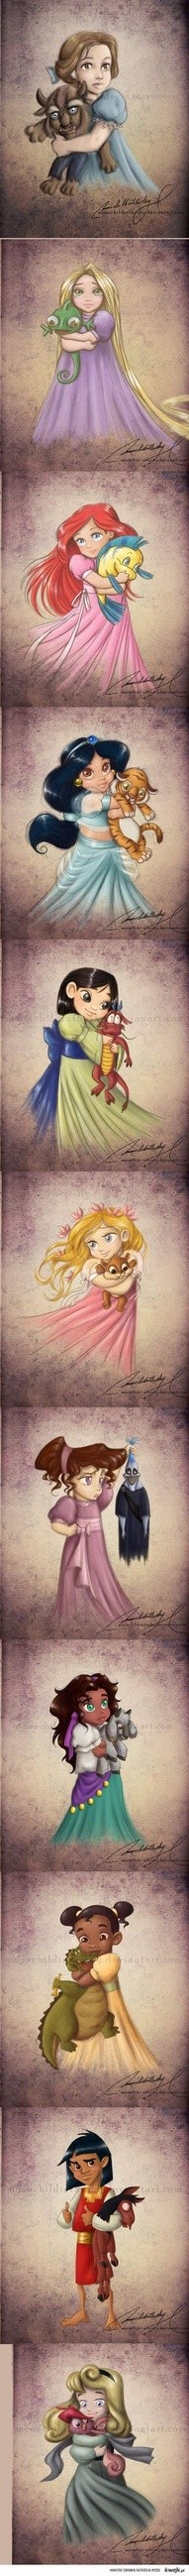 young disney characters: Little Princess, Baby Disney, Disney Princesses, Disney 3, Baby Princess, Disney Pixar, Disney Characters